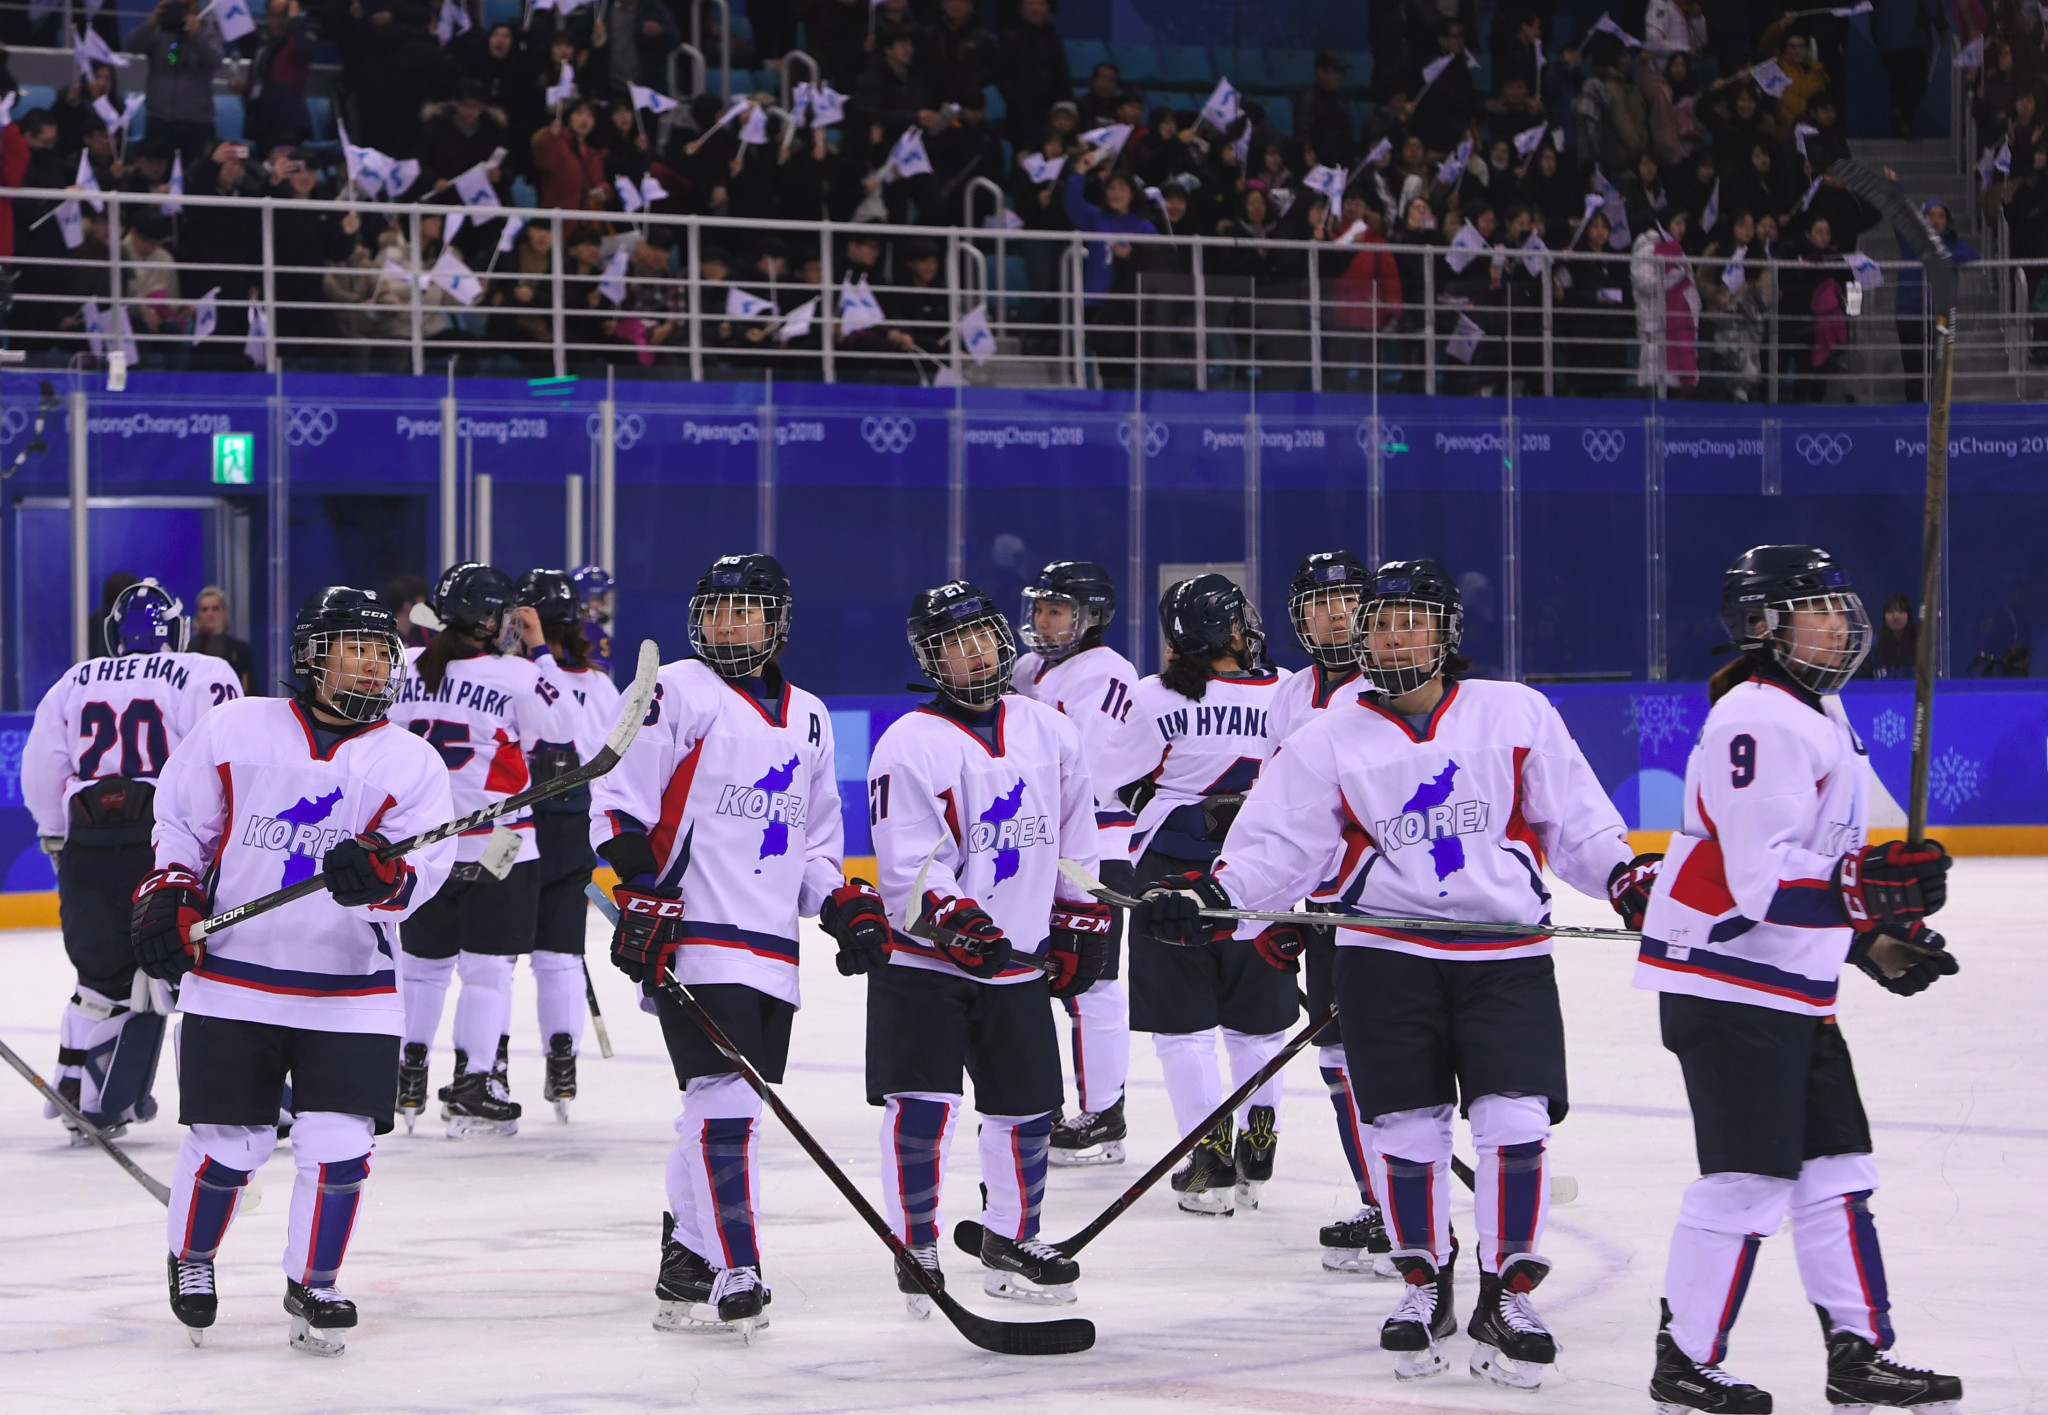 North and South Korea have already come together to form a joint team this year, in the women's ice hockey at Pyeognchang 2018 - an historic first for the Olympic Games ©Getty Images